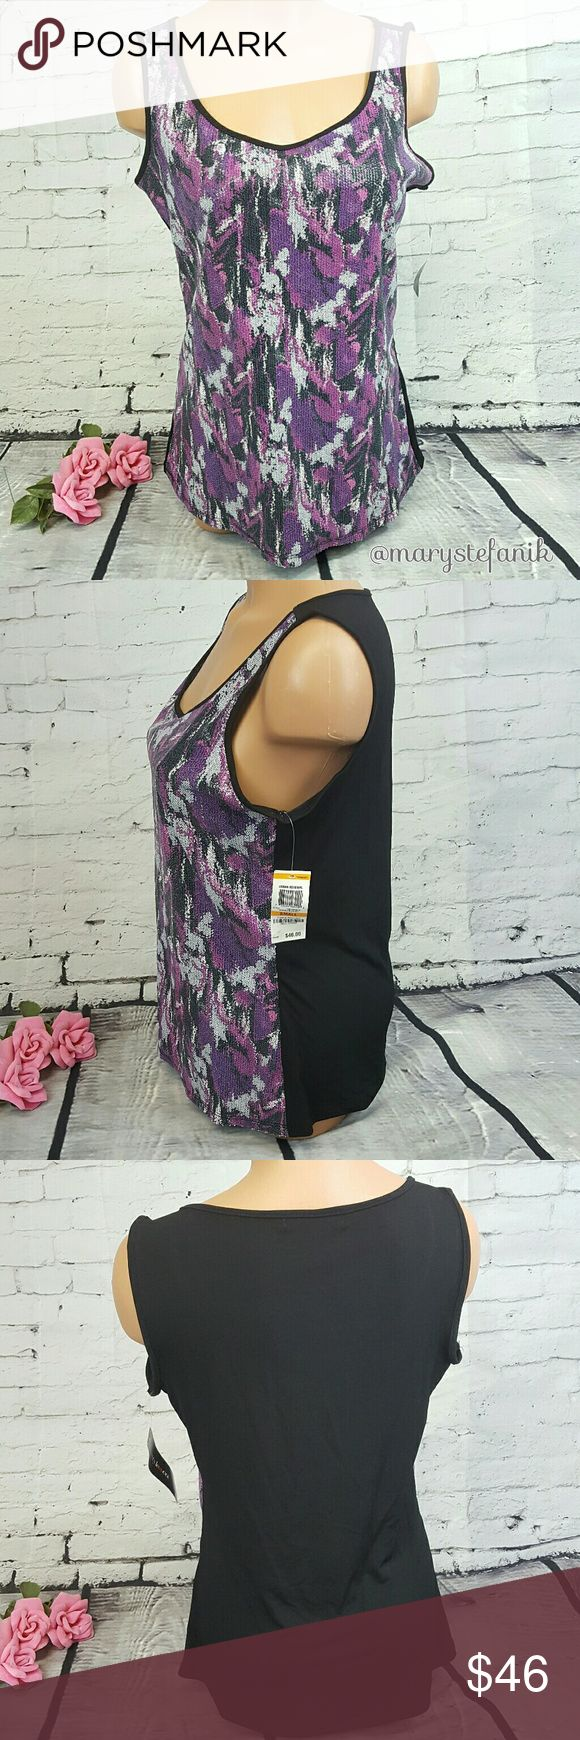 """{New} Style & Co. Purple Black Sequin Tank Top S {New} Style & Co. Purple Black Sequin Tank Top size S. Perfect for a summer night out!  Waist from Seam to Seam Approx: 18"""" Length from Top Approx: 25""""  Please let me know if you have any questions. Happy Poshing! Style & Co Tops Tank Tops"""